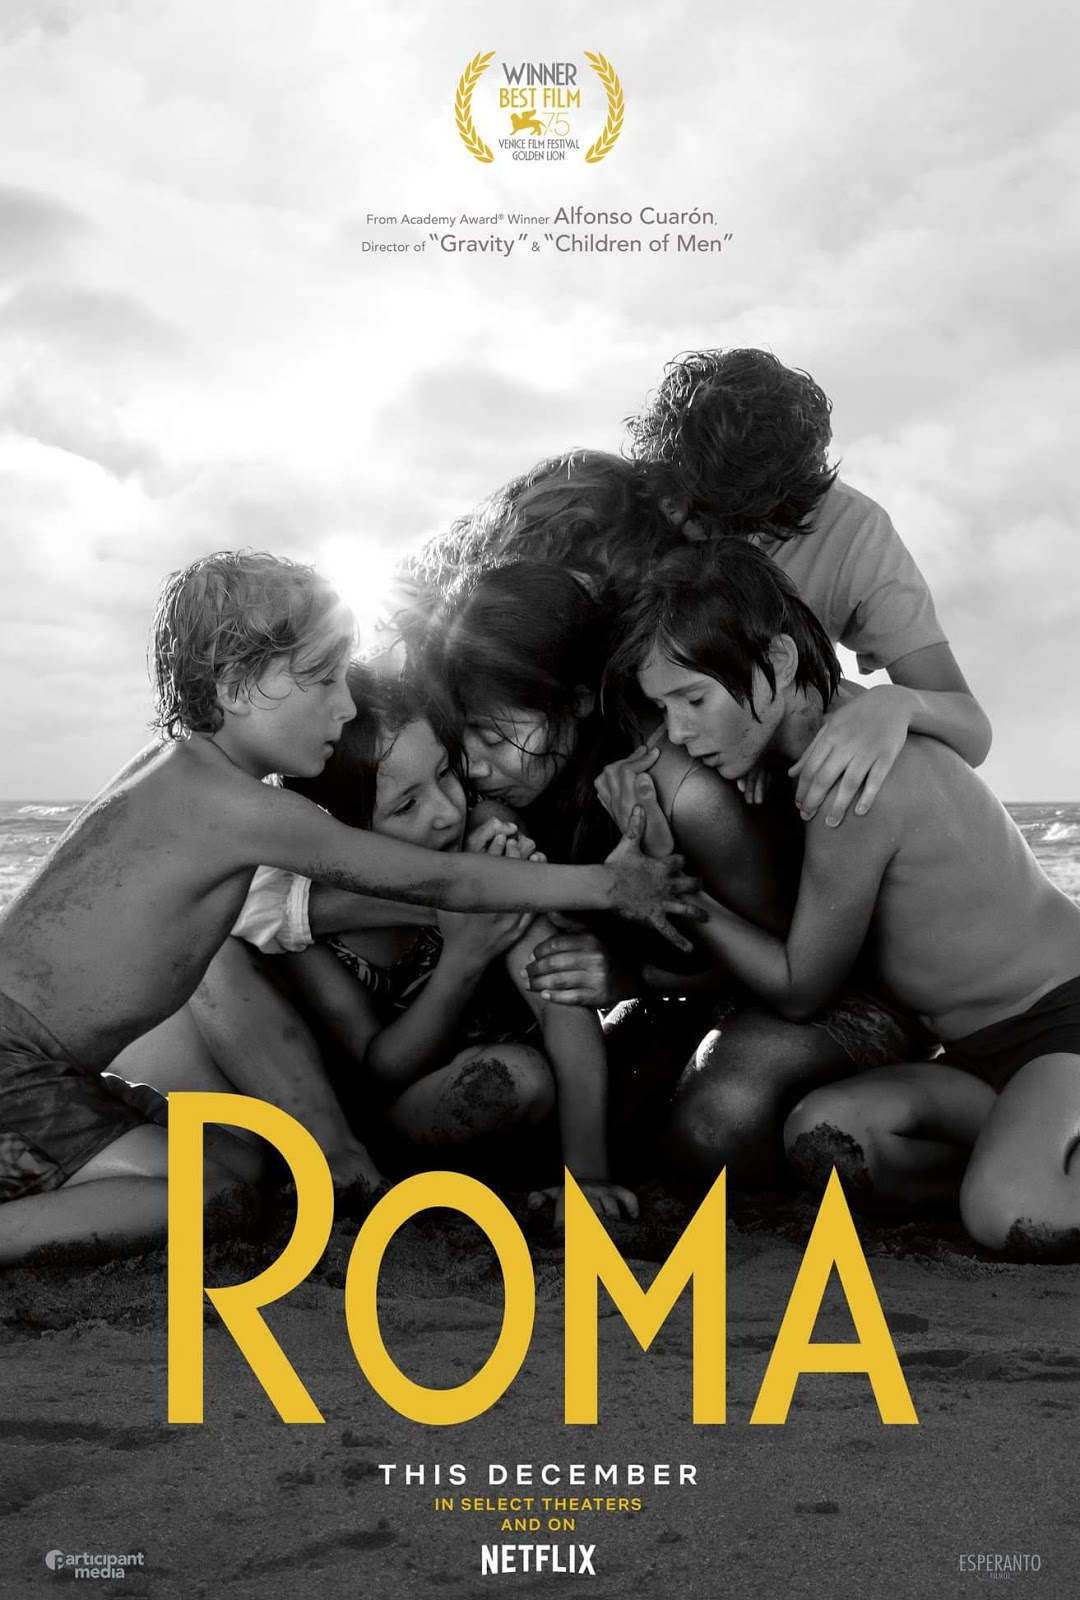 ROMA MOVIE, BEST PICTURE, OSCARS 2019,